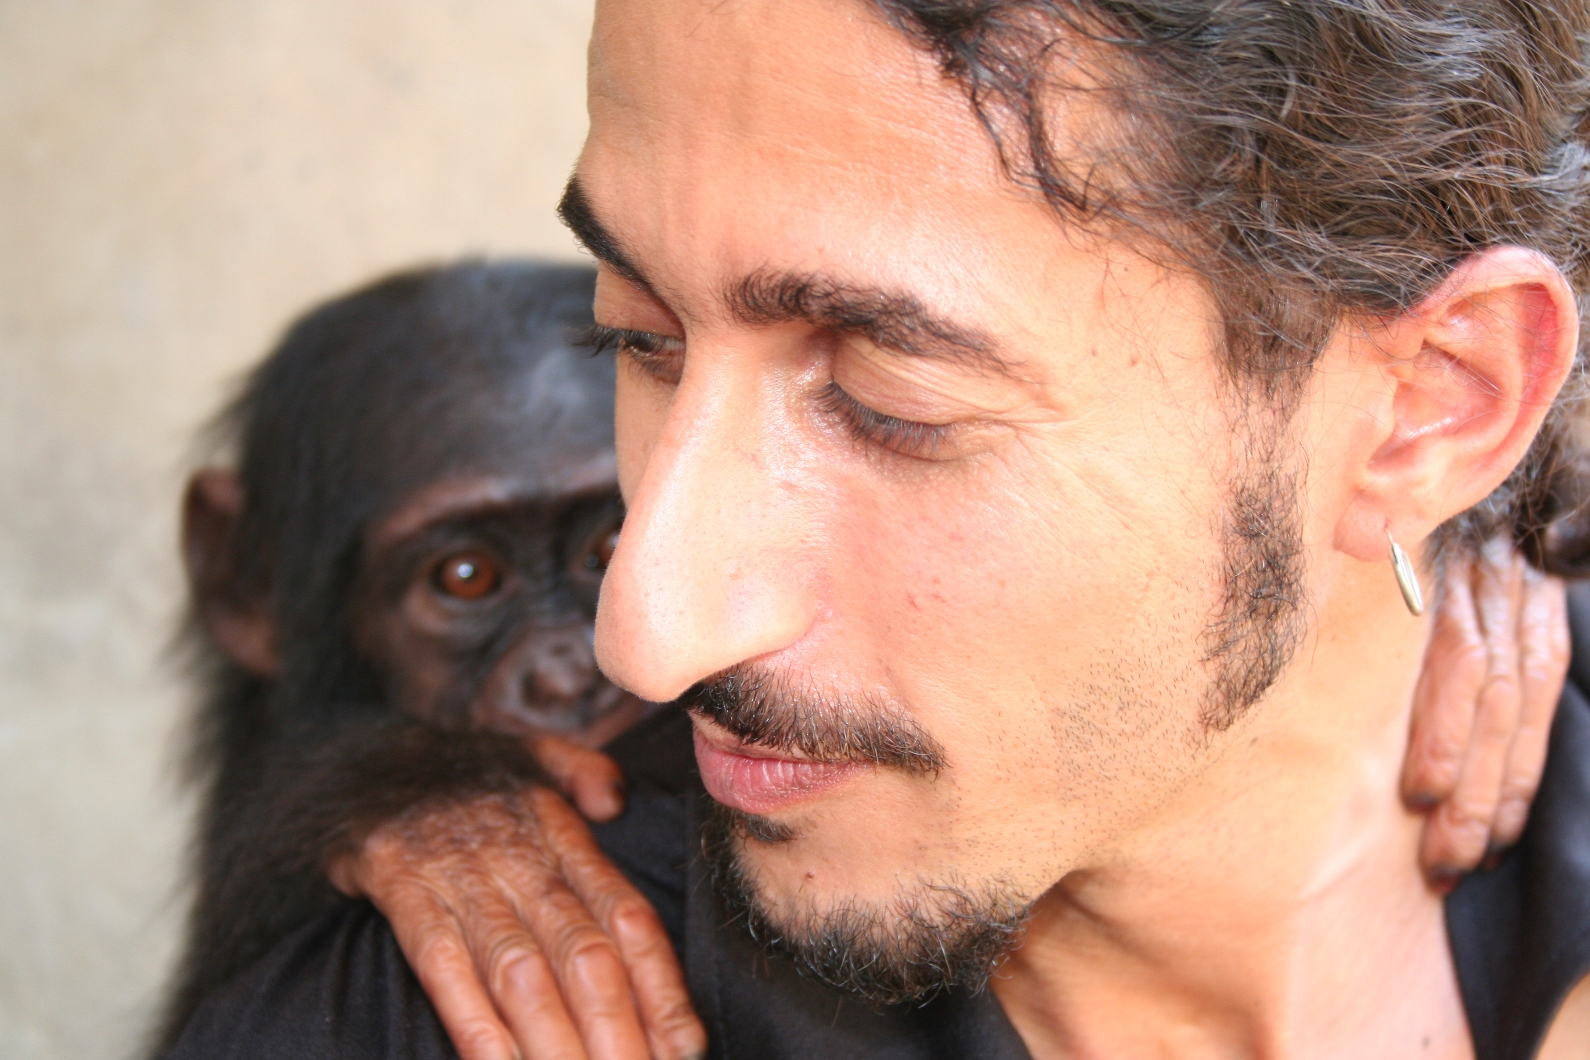 Ofir Drori's life work began with his rescue of an orphaned chimp he named Future. Photo courtesy of EAGLE Network